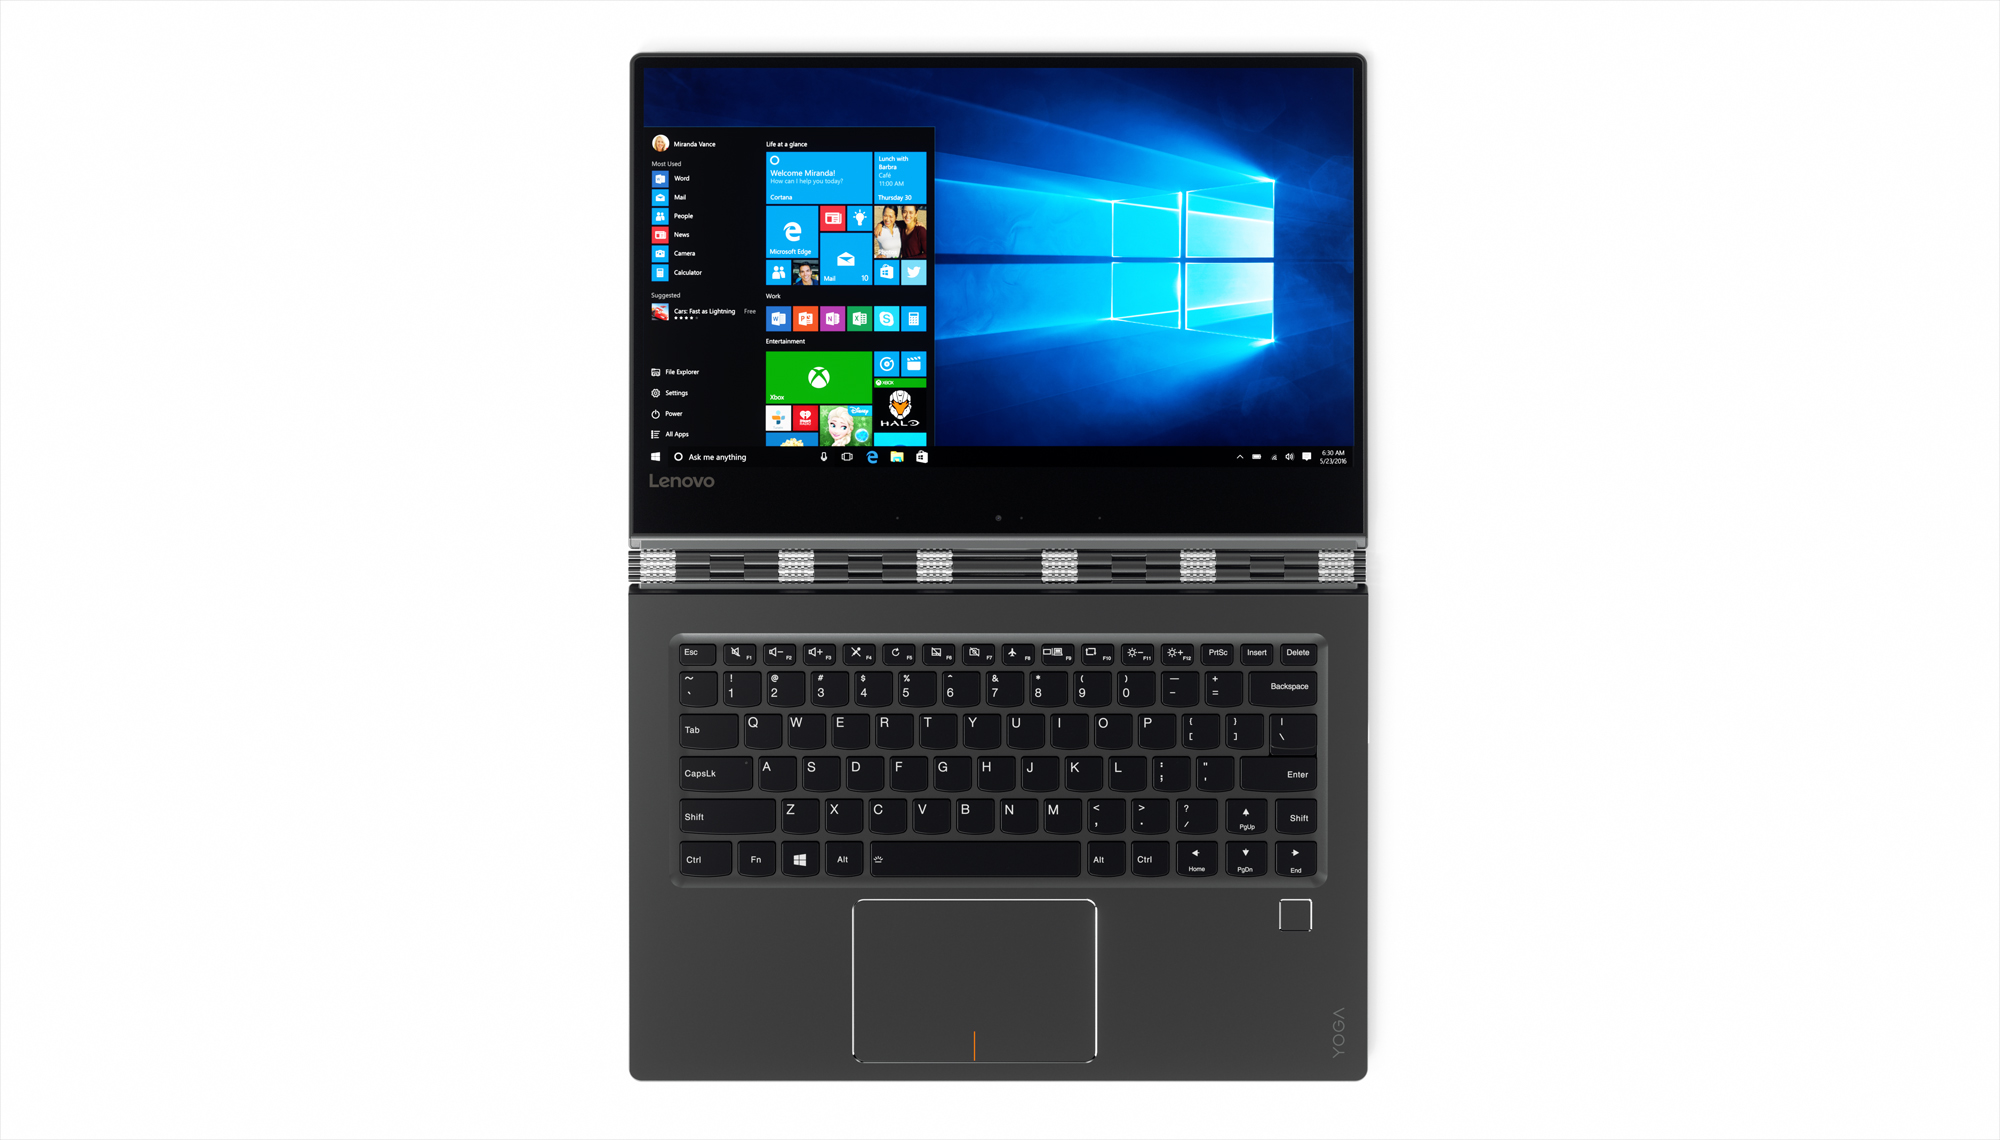 The Lenovo Yoga 910.